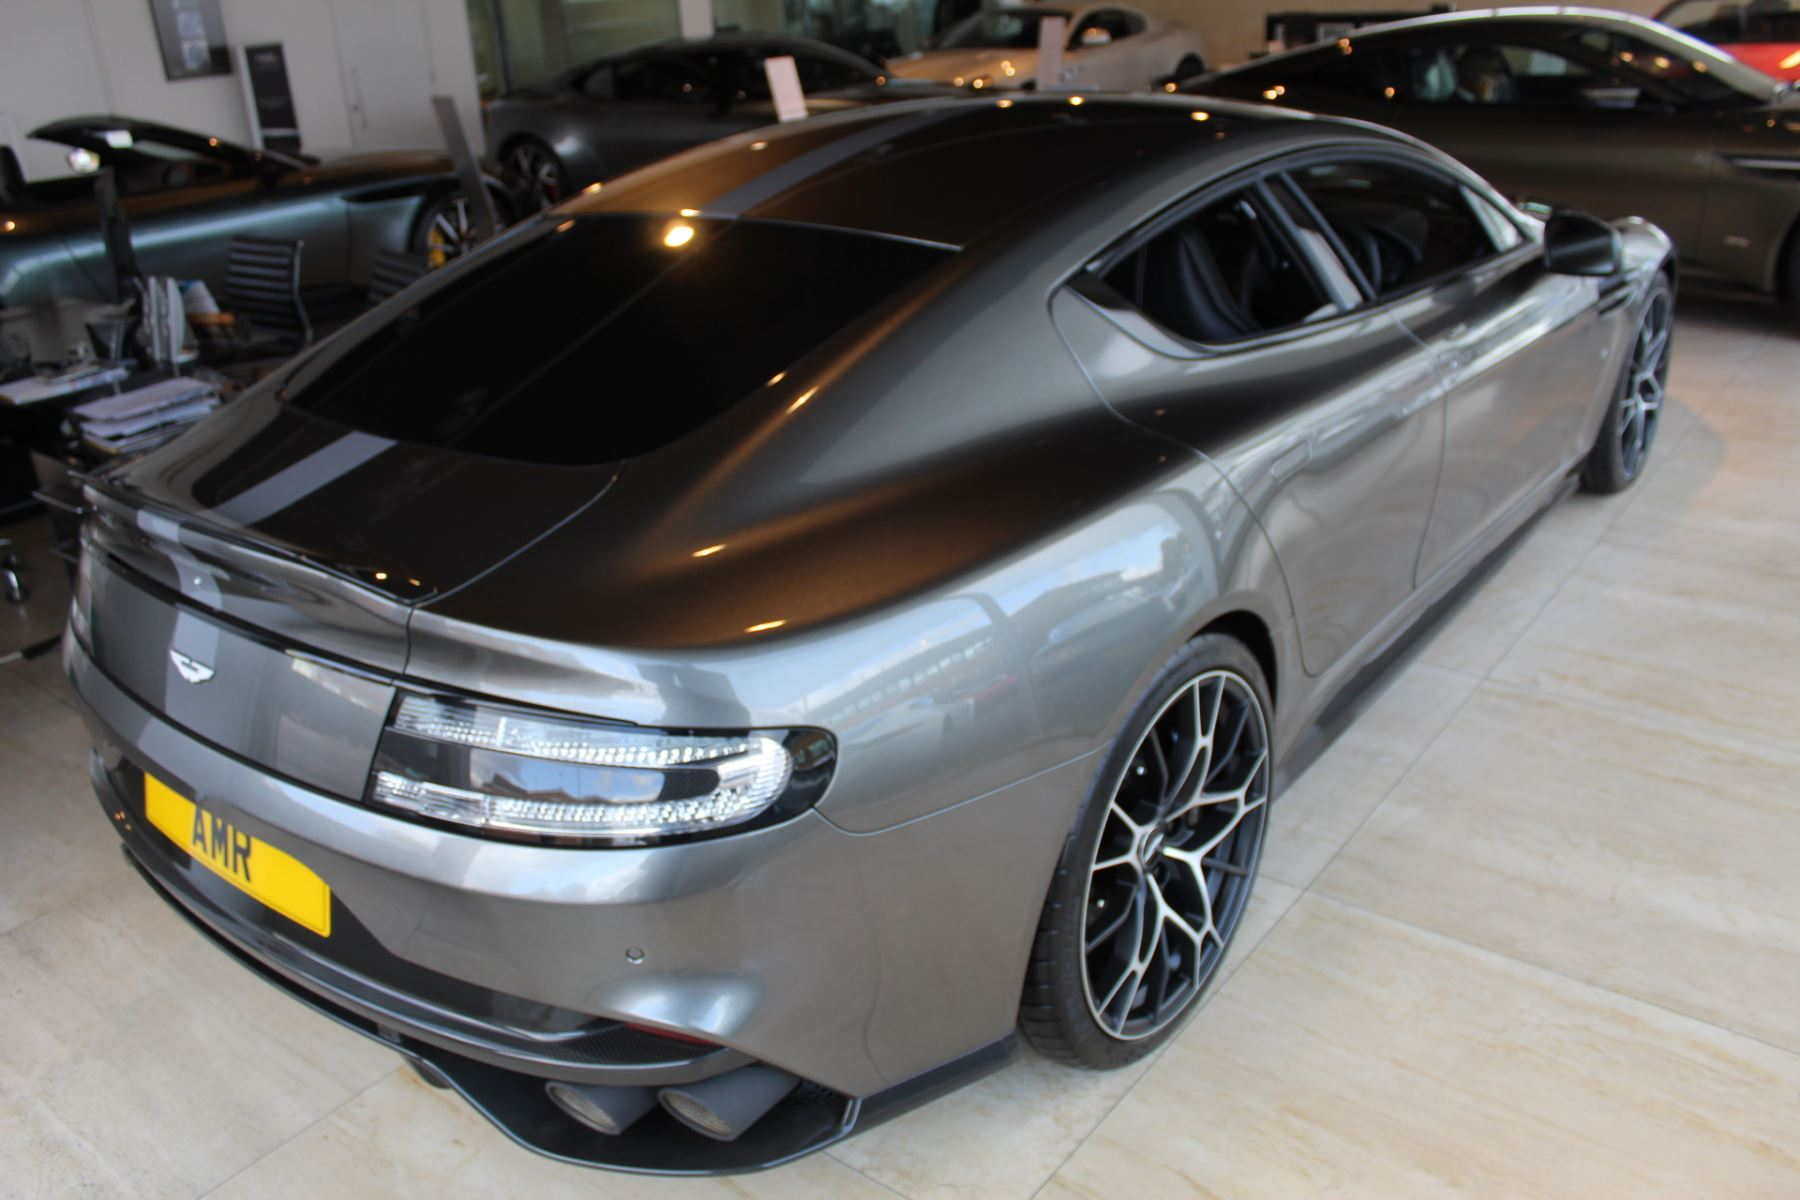 Aston Martin Rapide S V12 Touchtronic image 4